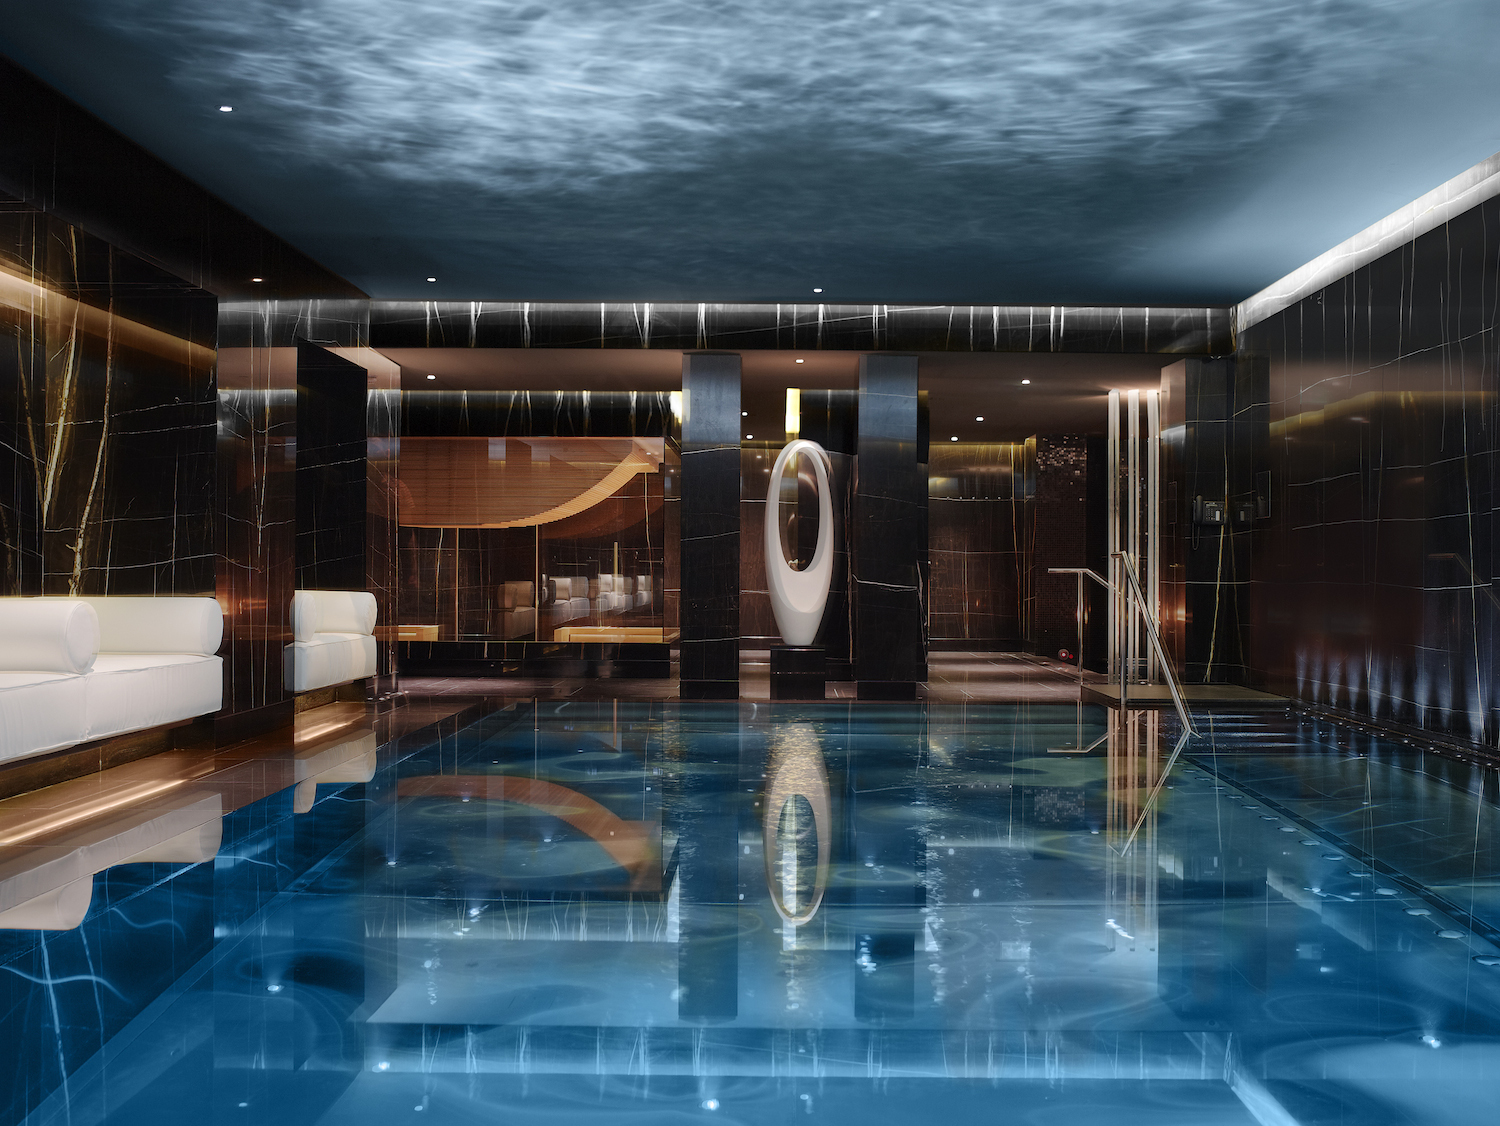 10 Fab Hotels With Hot Tubs In London Relax And Unwind In London